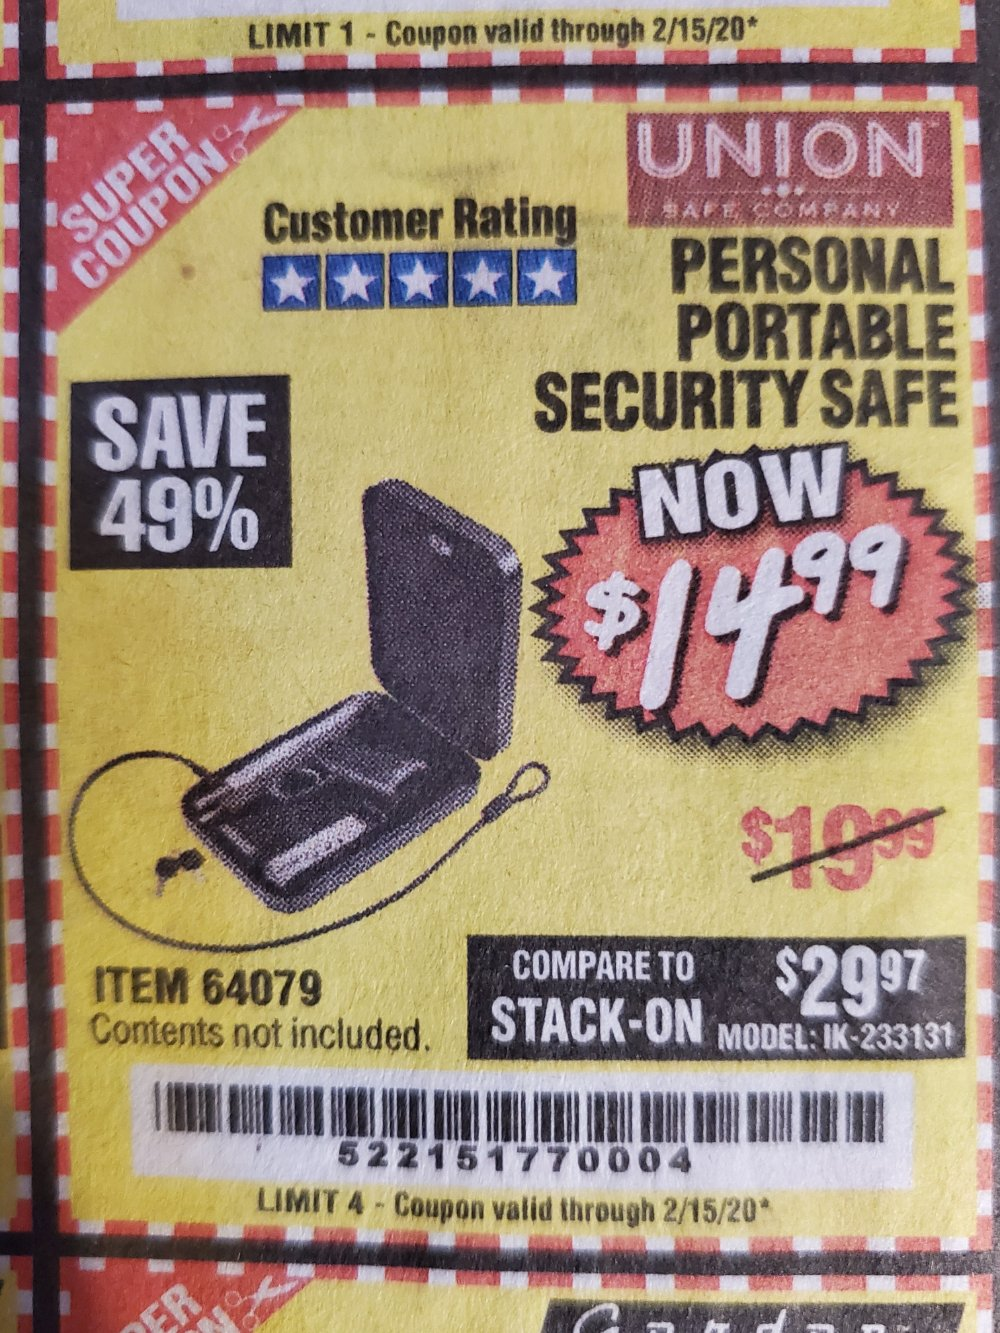 Harbor Freight Coupon, HF Coupons - Personal Portable Security Safe